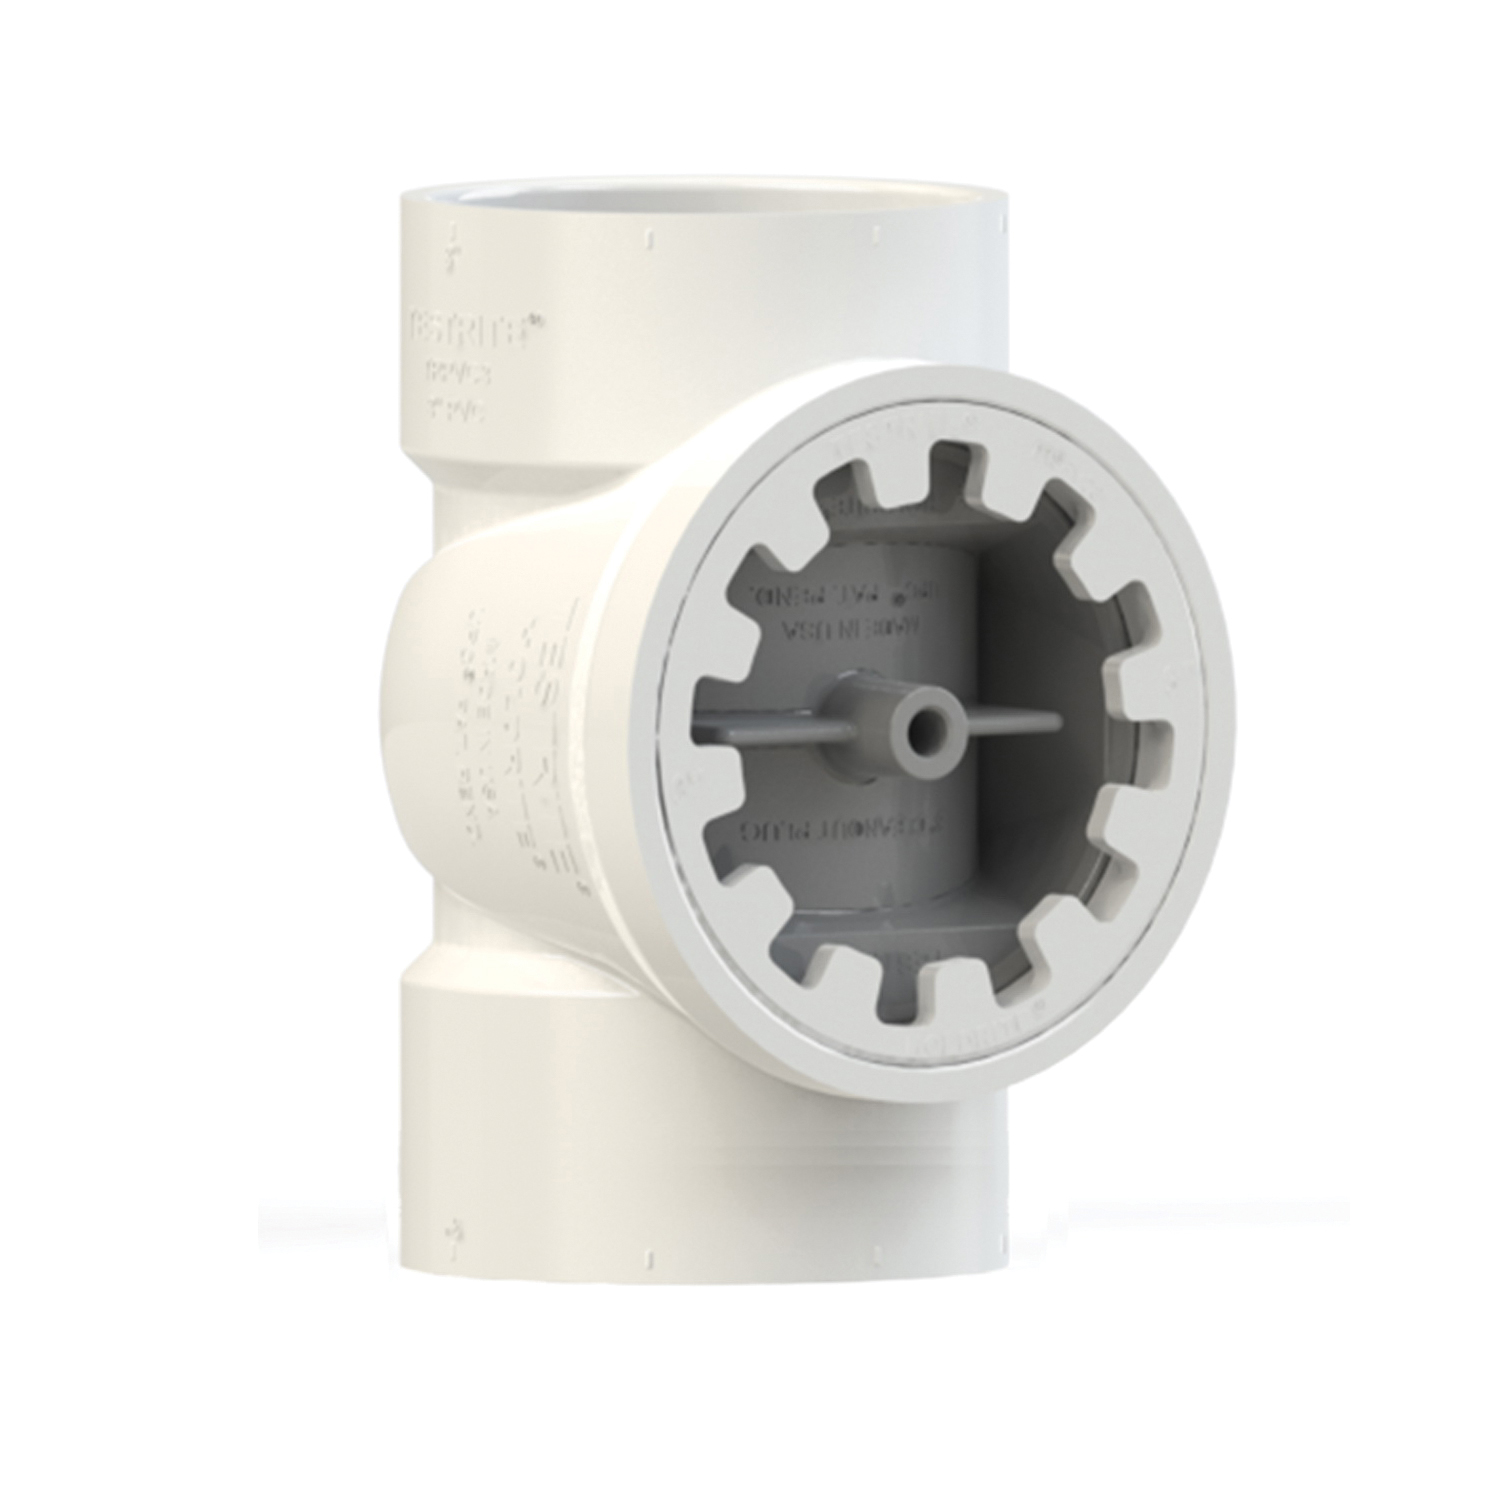 Holdrite® TESTRITE® TRPVC4A DWV Test/Cleanout Tee With Plug, 4 in, PVC, Domestic